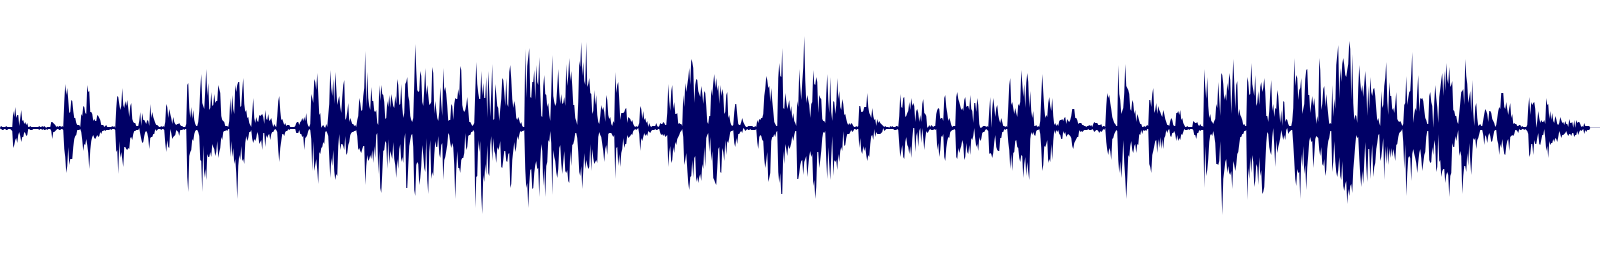 waveform of track #101683